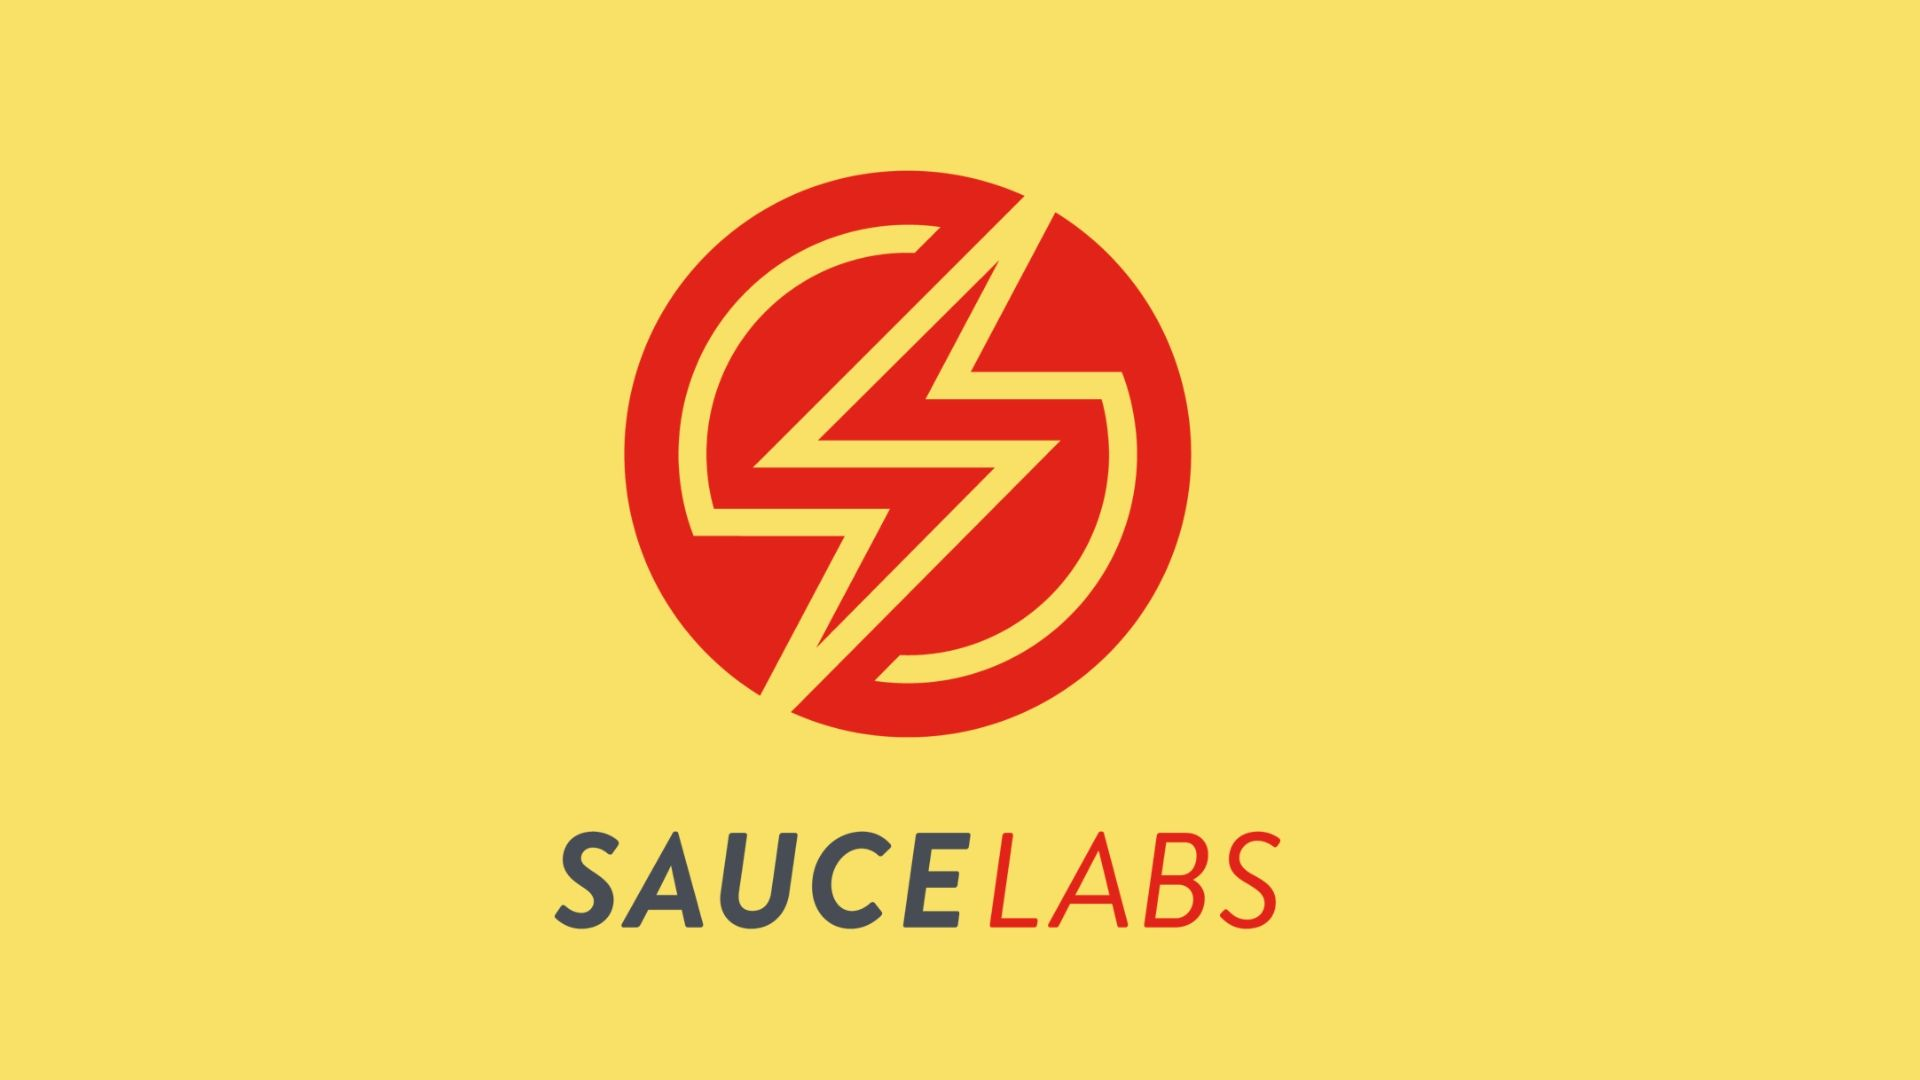 Sauce Labs Competitors